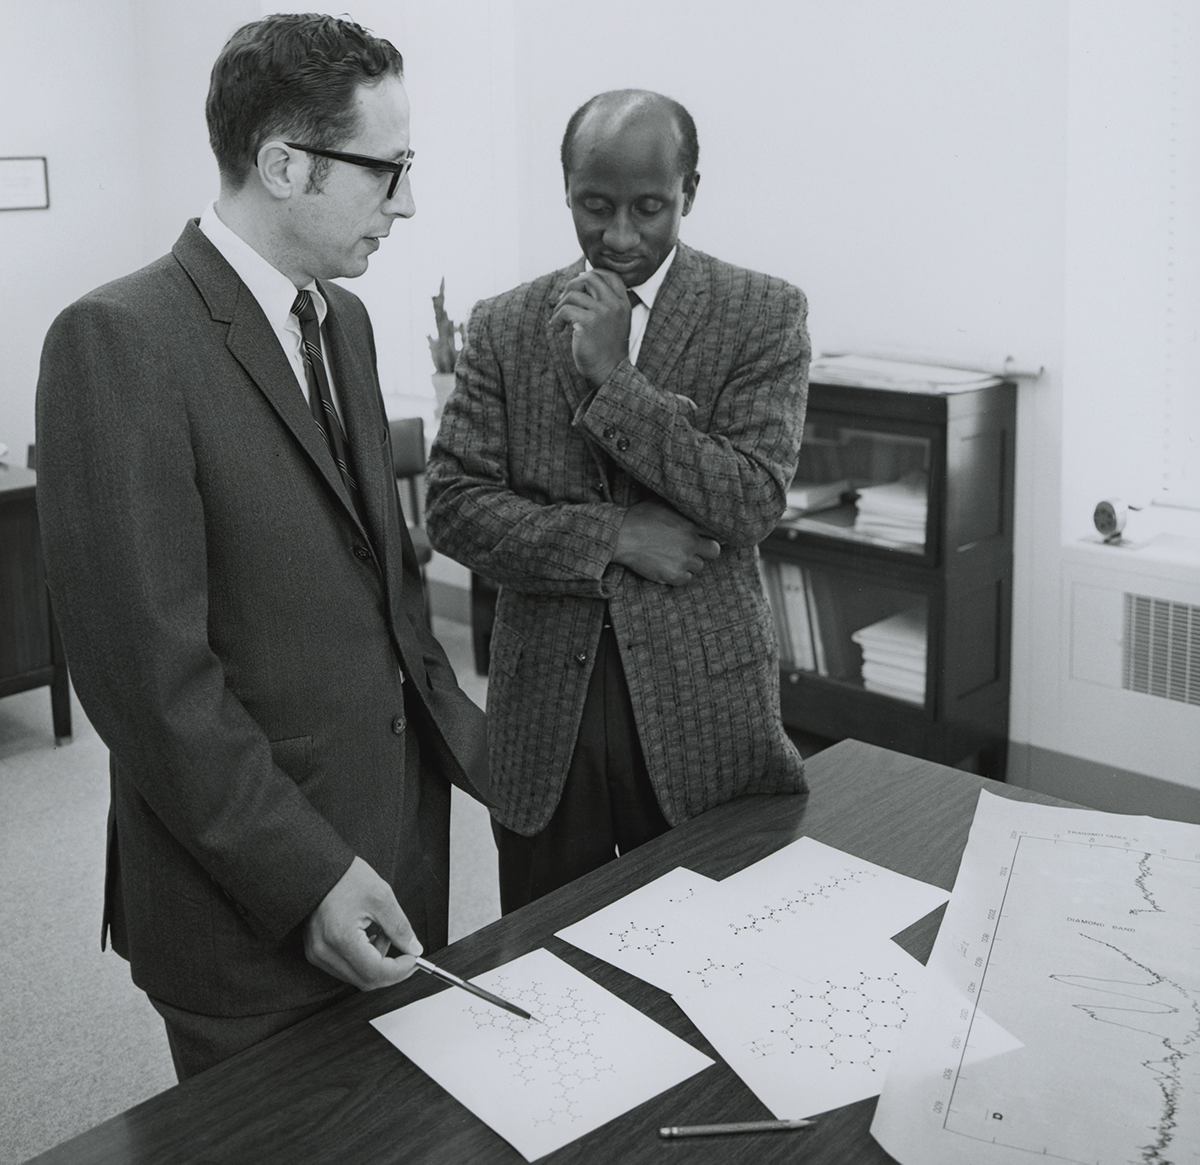 Photo of two men standing over a desk